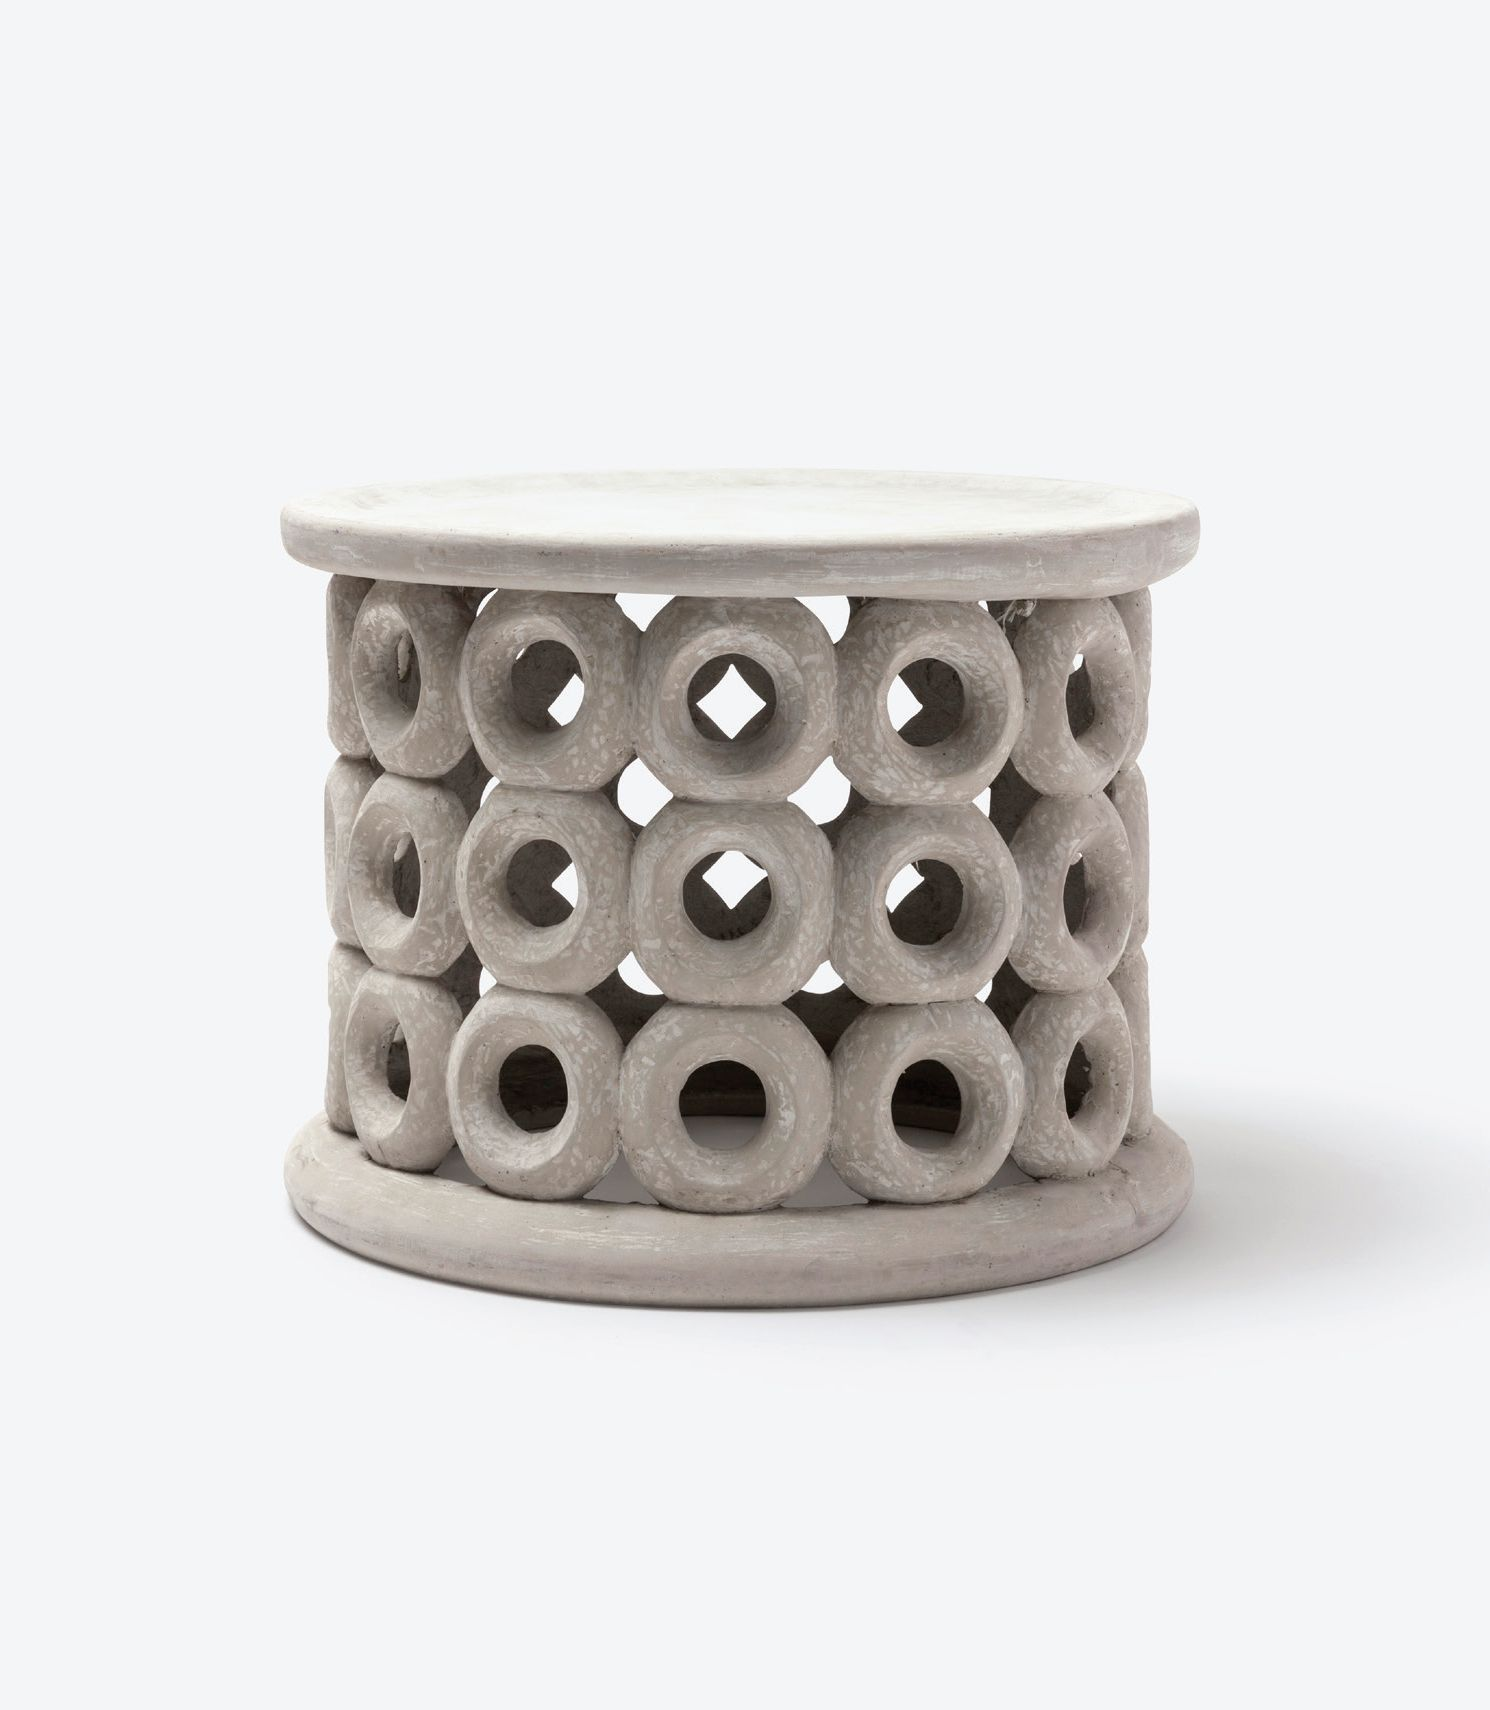 dohnet concrete outdoor side table mecox gardens fnst donut ceramic pottery barn glass top teak silver accent round lamp tables for living room furniture chairs marble sofa